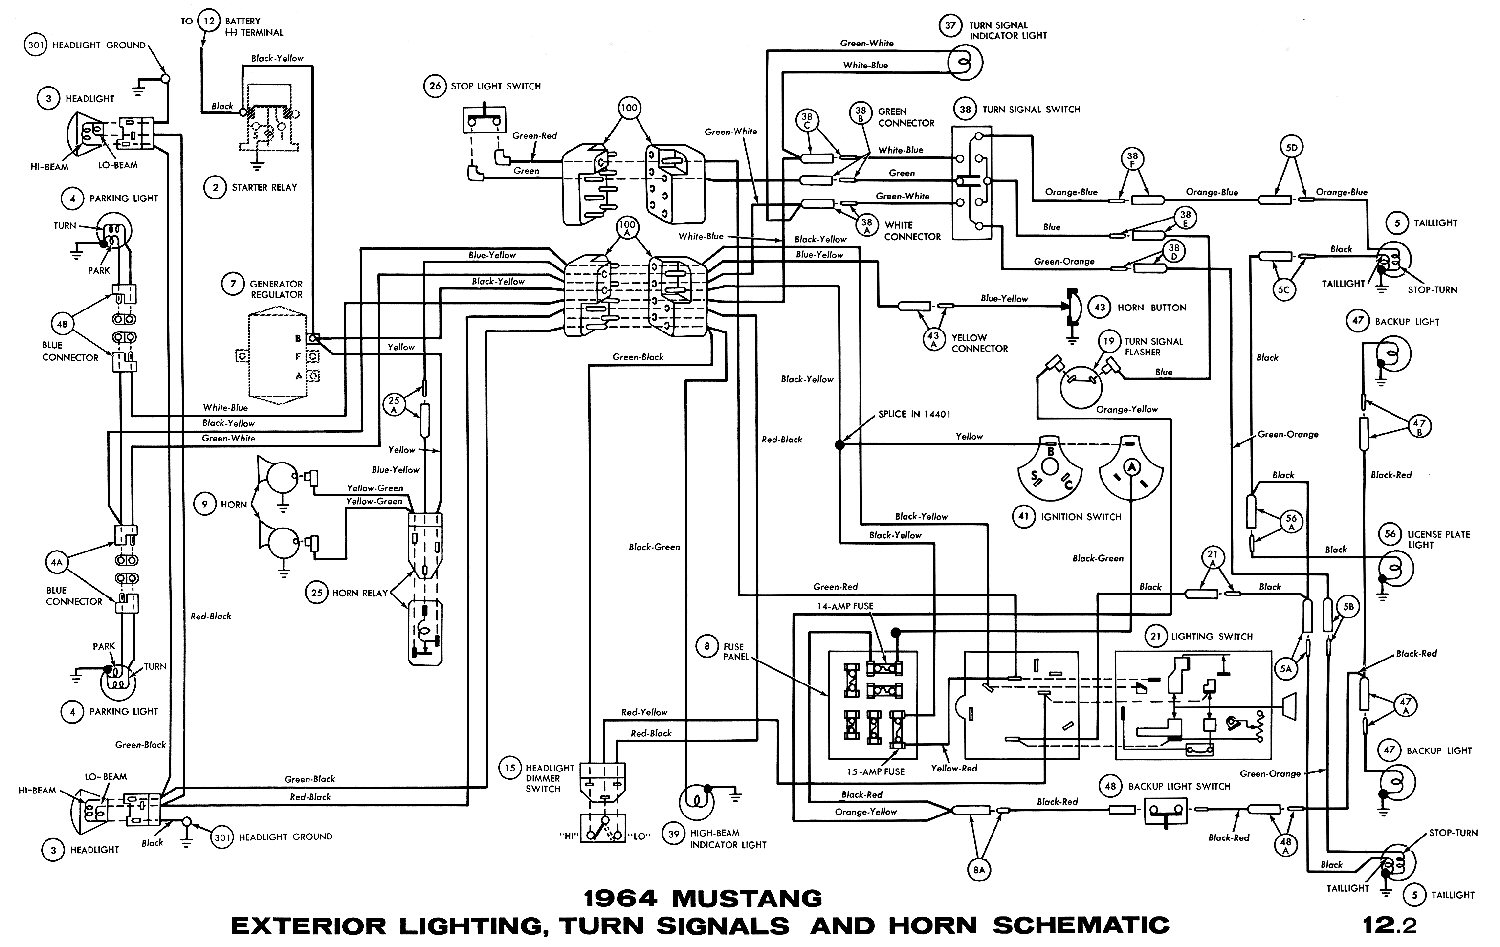 ... Turn Signals and Horns Pictorial or Schematic. Headlamps ...